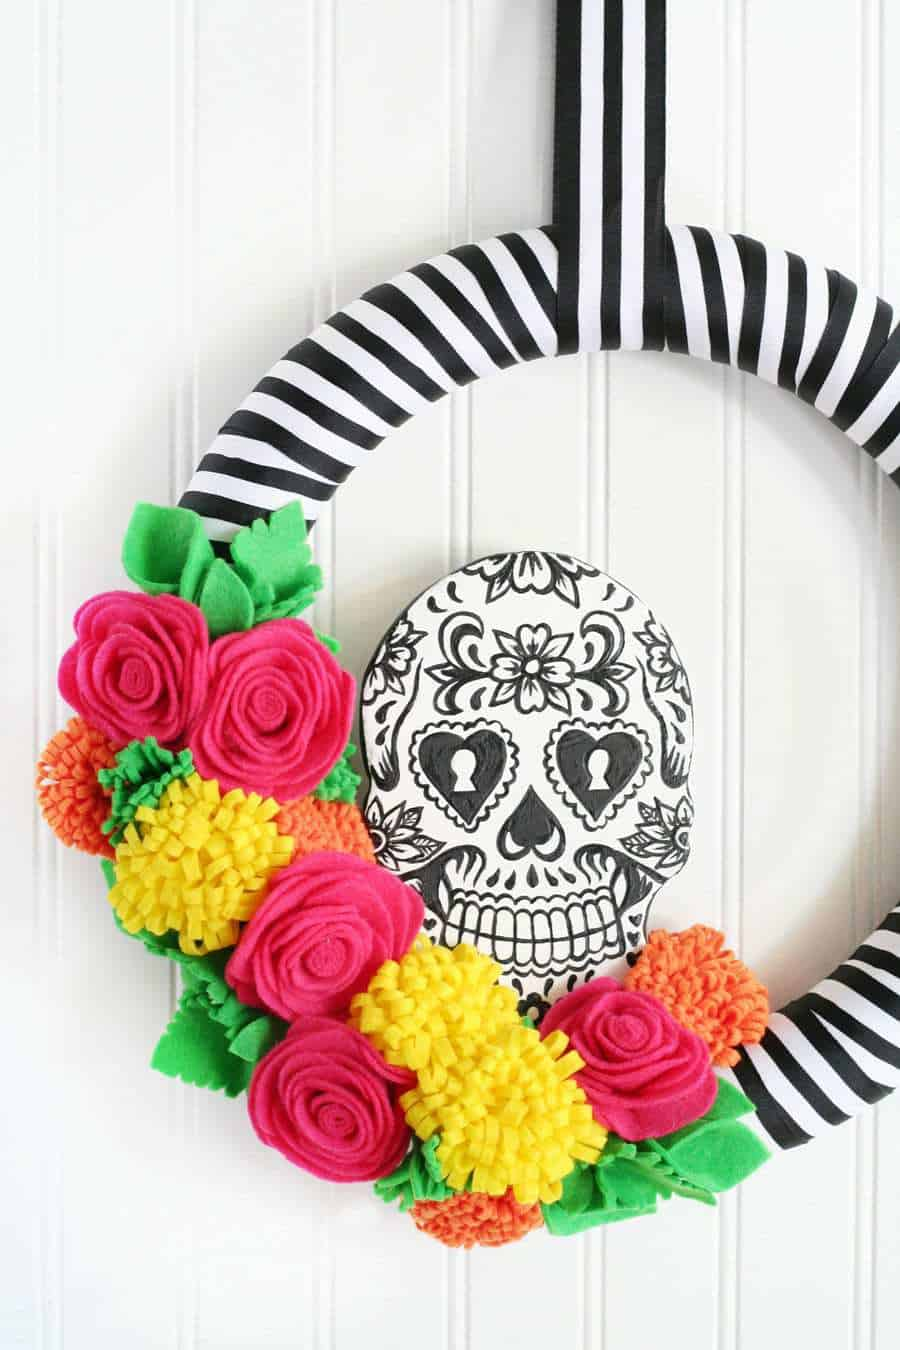 This sugar skull wreath is so striking you'll want to keep it up past Halloween!